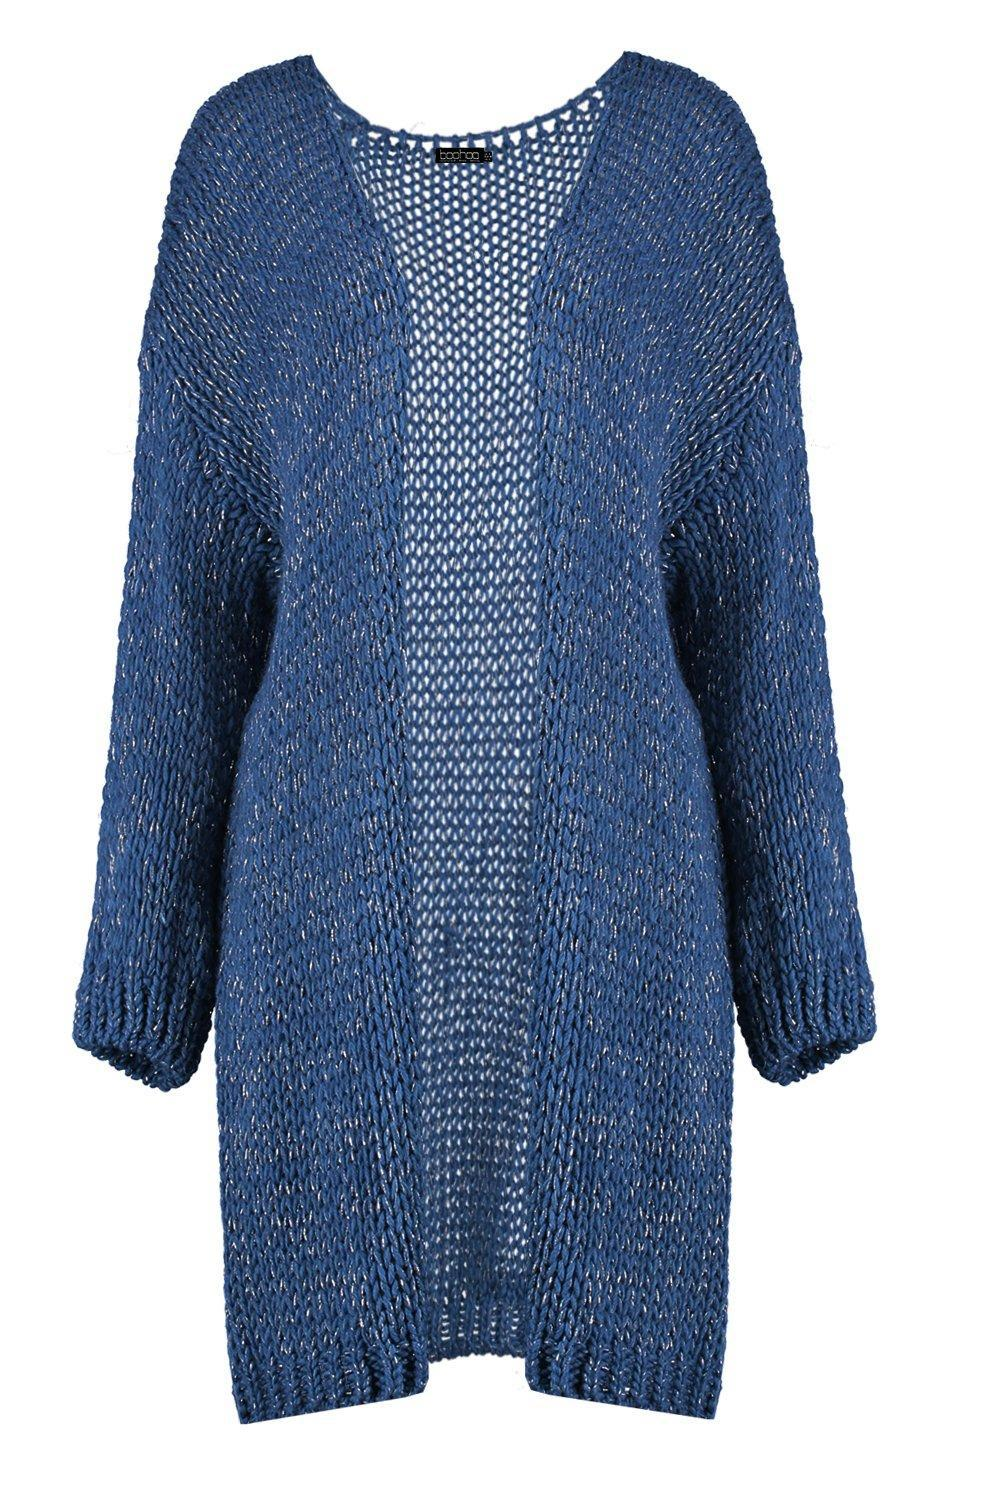 Boohoo Synthetic Lurex Knit Cardigan in Blue